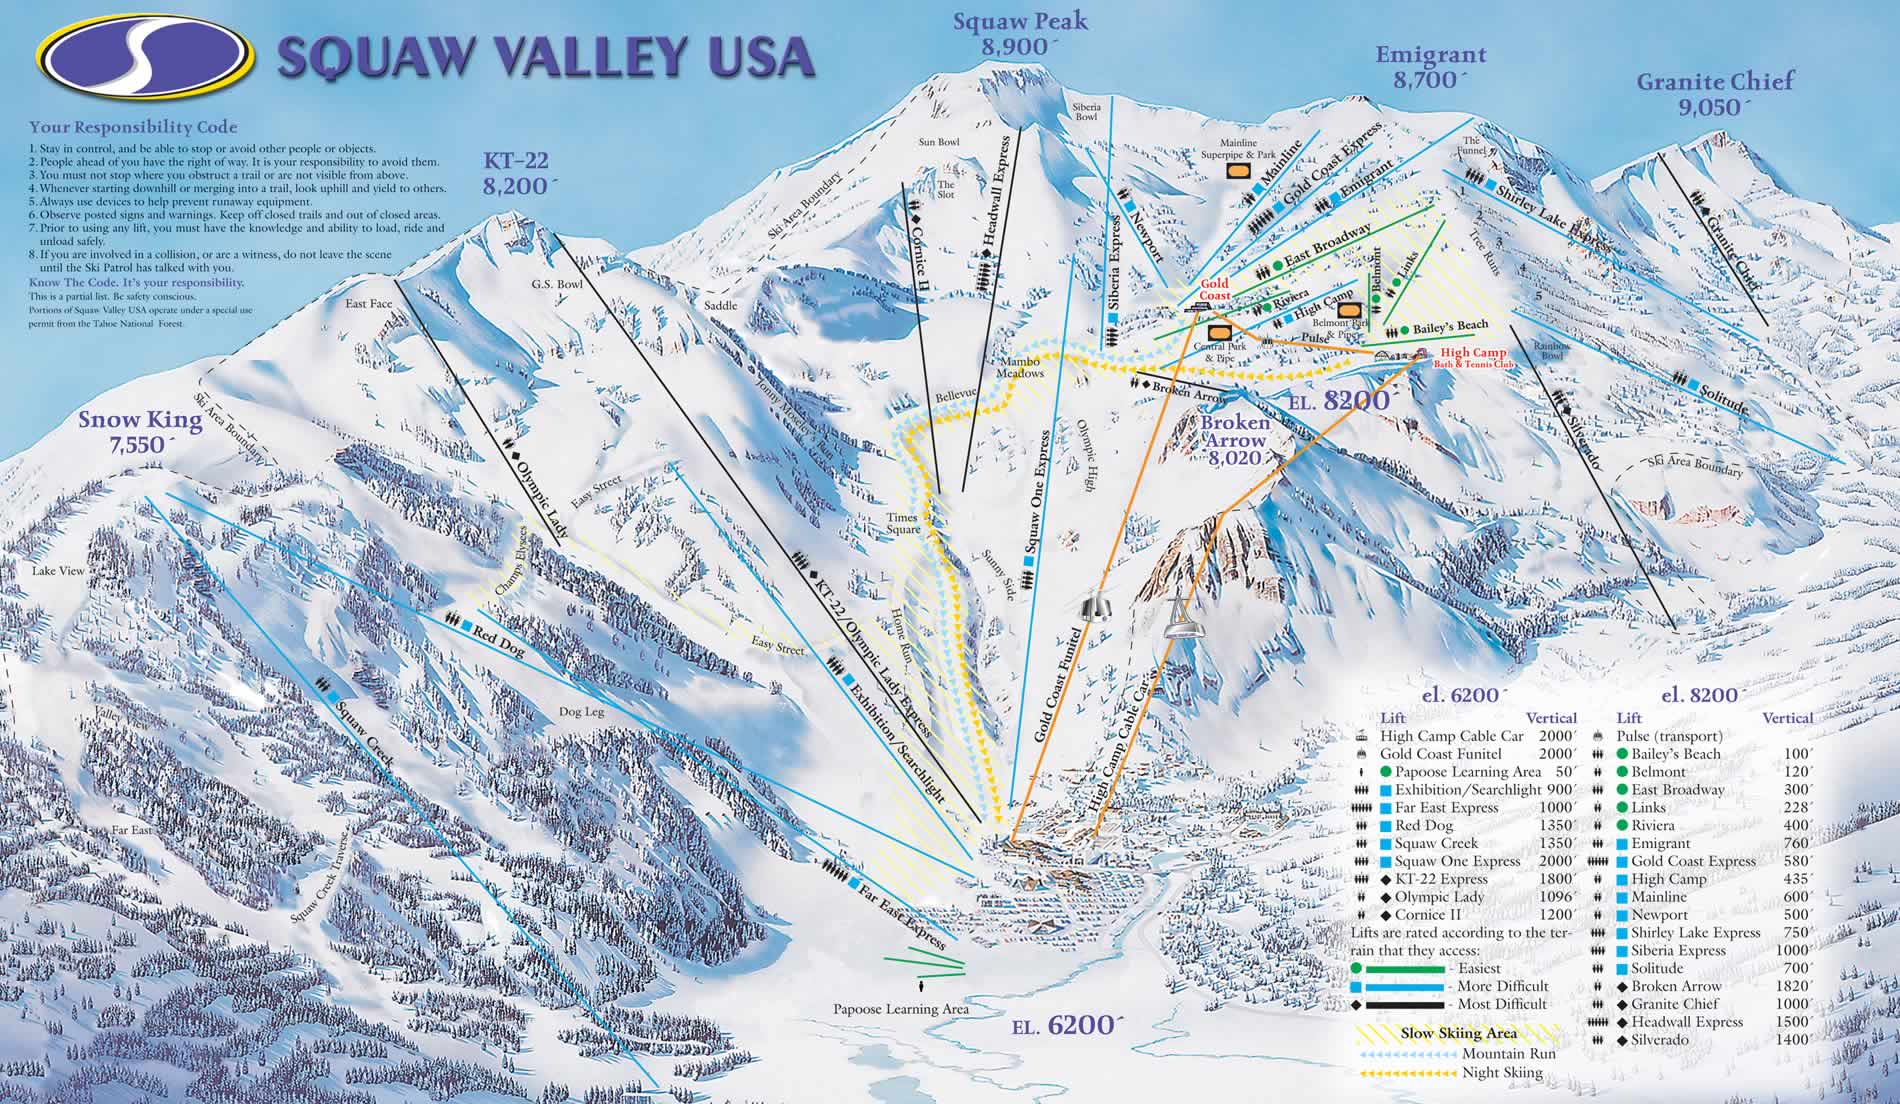 Squaw Valley, USA trail map